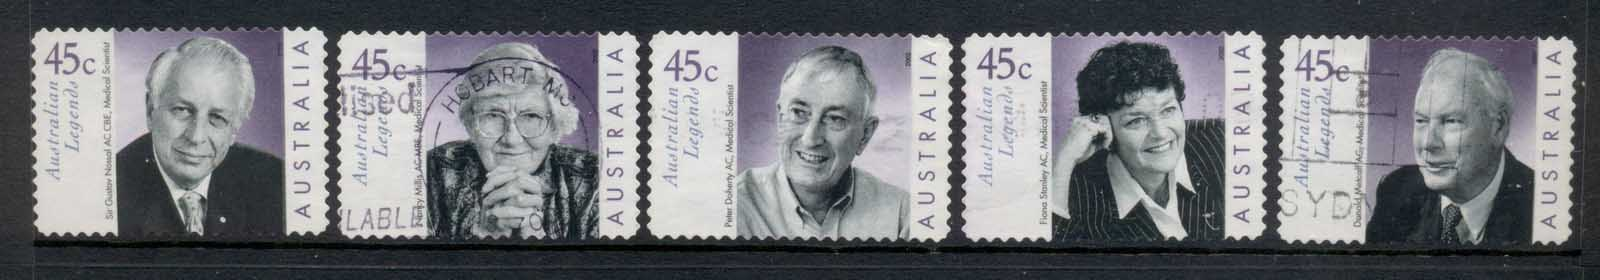 Australia 2002 Australian Legends P&S FU